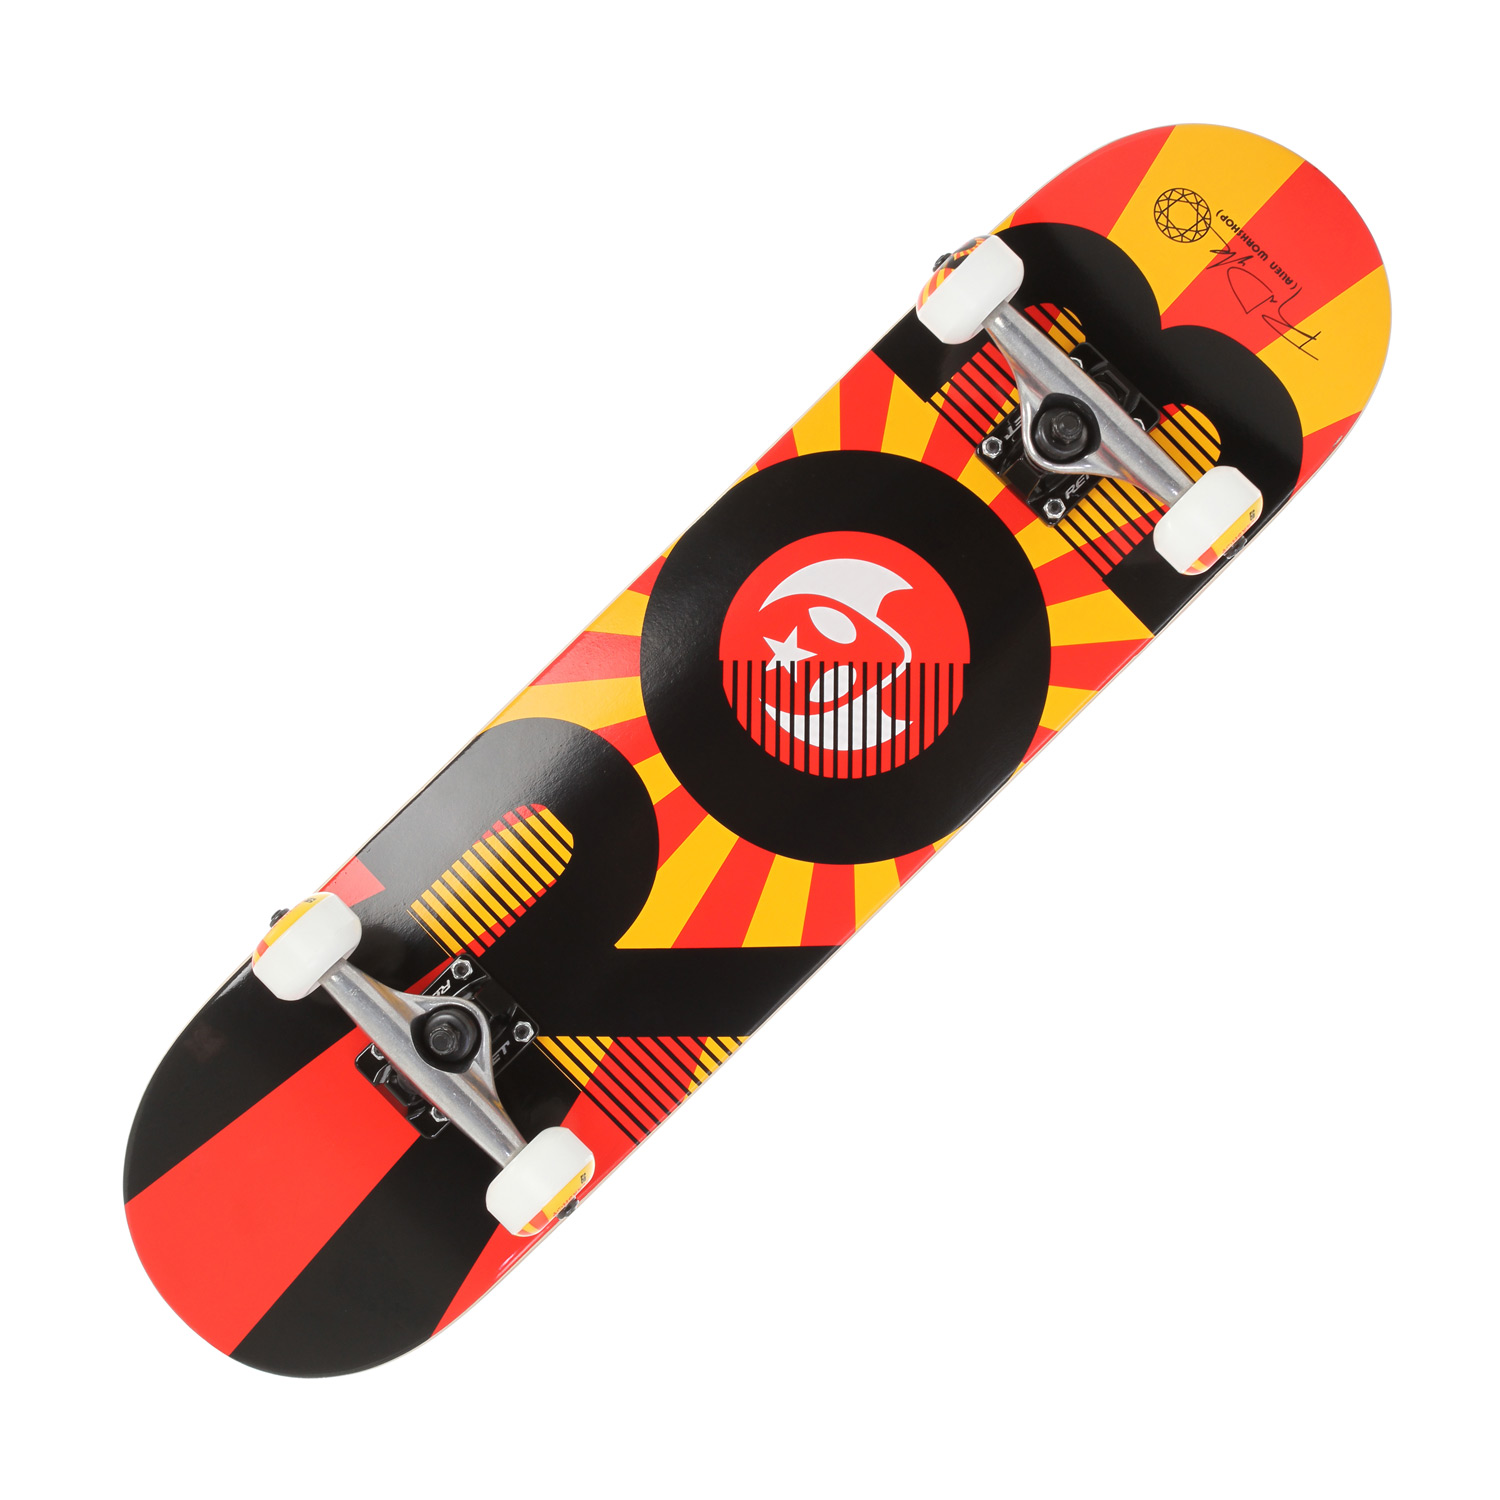 "Skateboard The ability to skate like Mr. Dyrdek is not included. Key Features of the Alien Workshop Dyrdek Rising Skateboard Complete: Complete: 31"" long x 7.75"" wide. - $109.95"